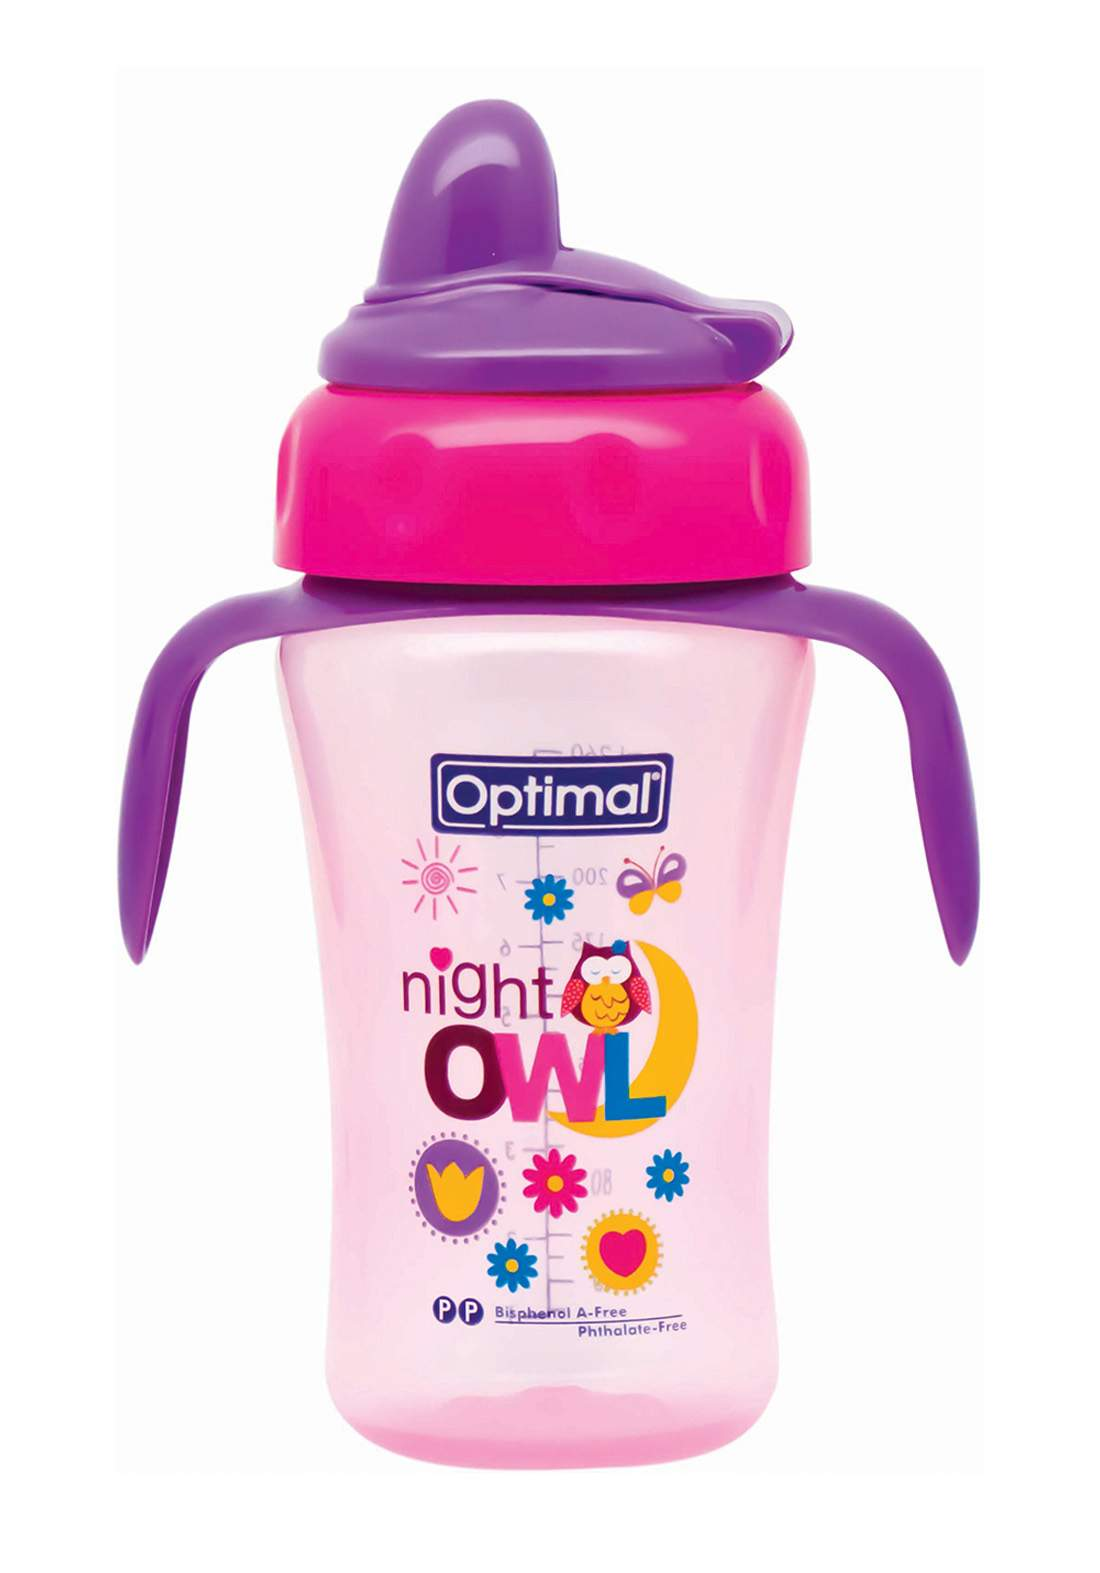 Optimal P. P silicone spout bottle with handle 260 ml كوب للأطفال